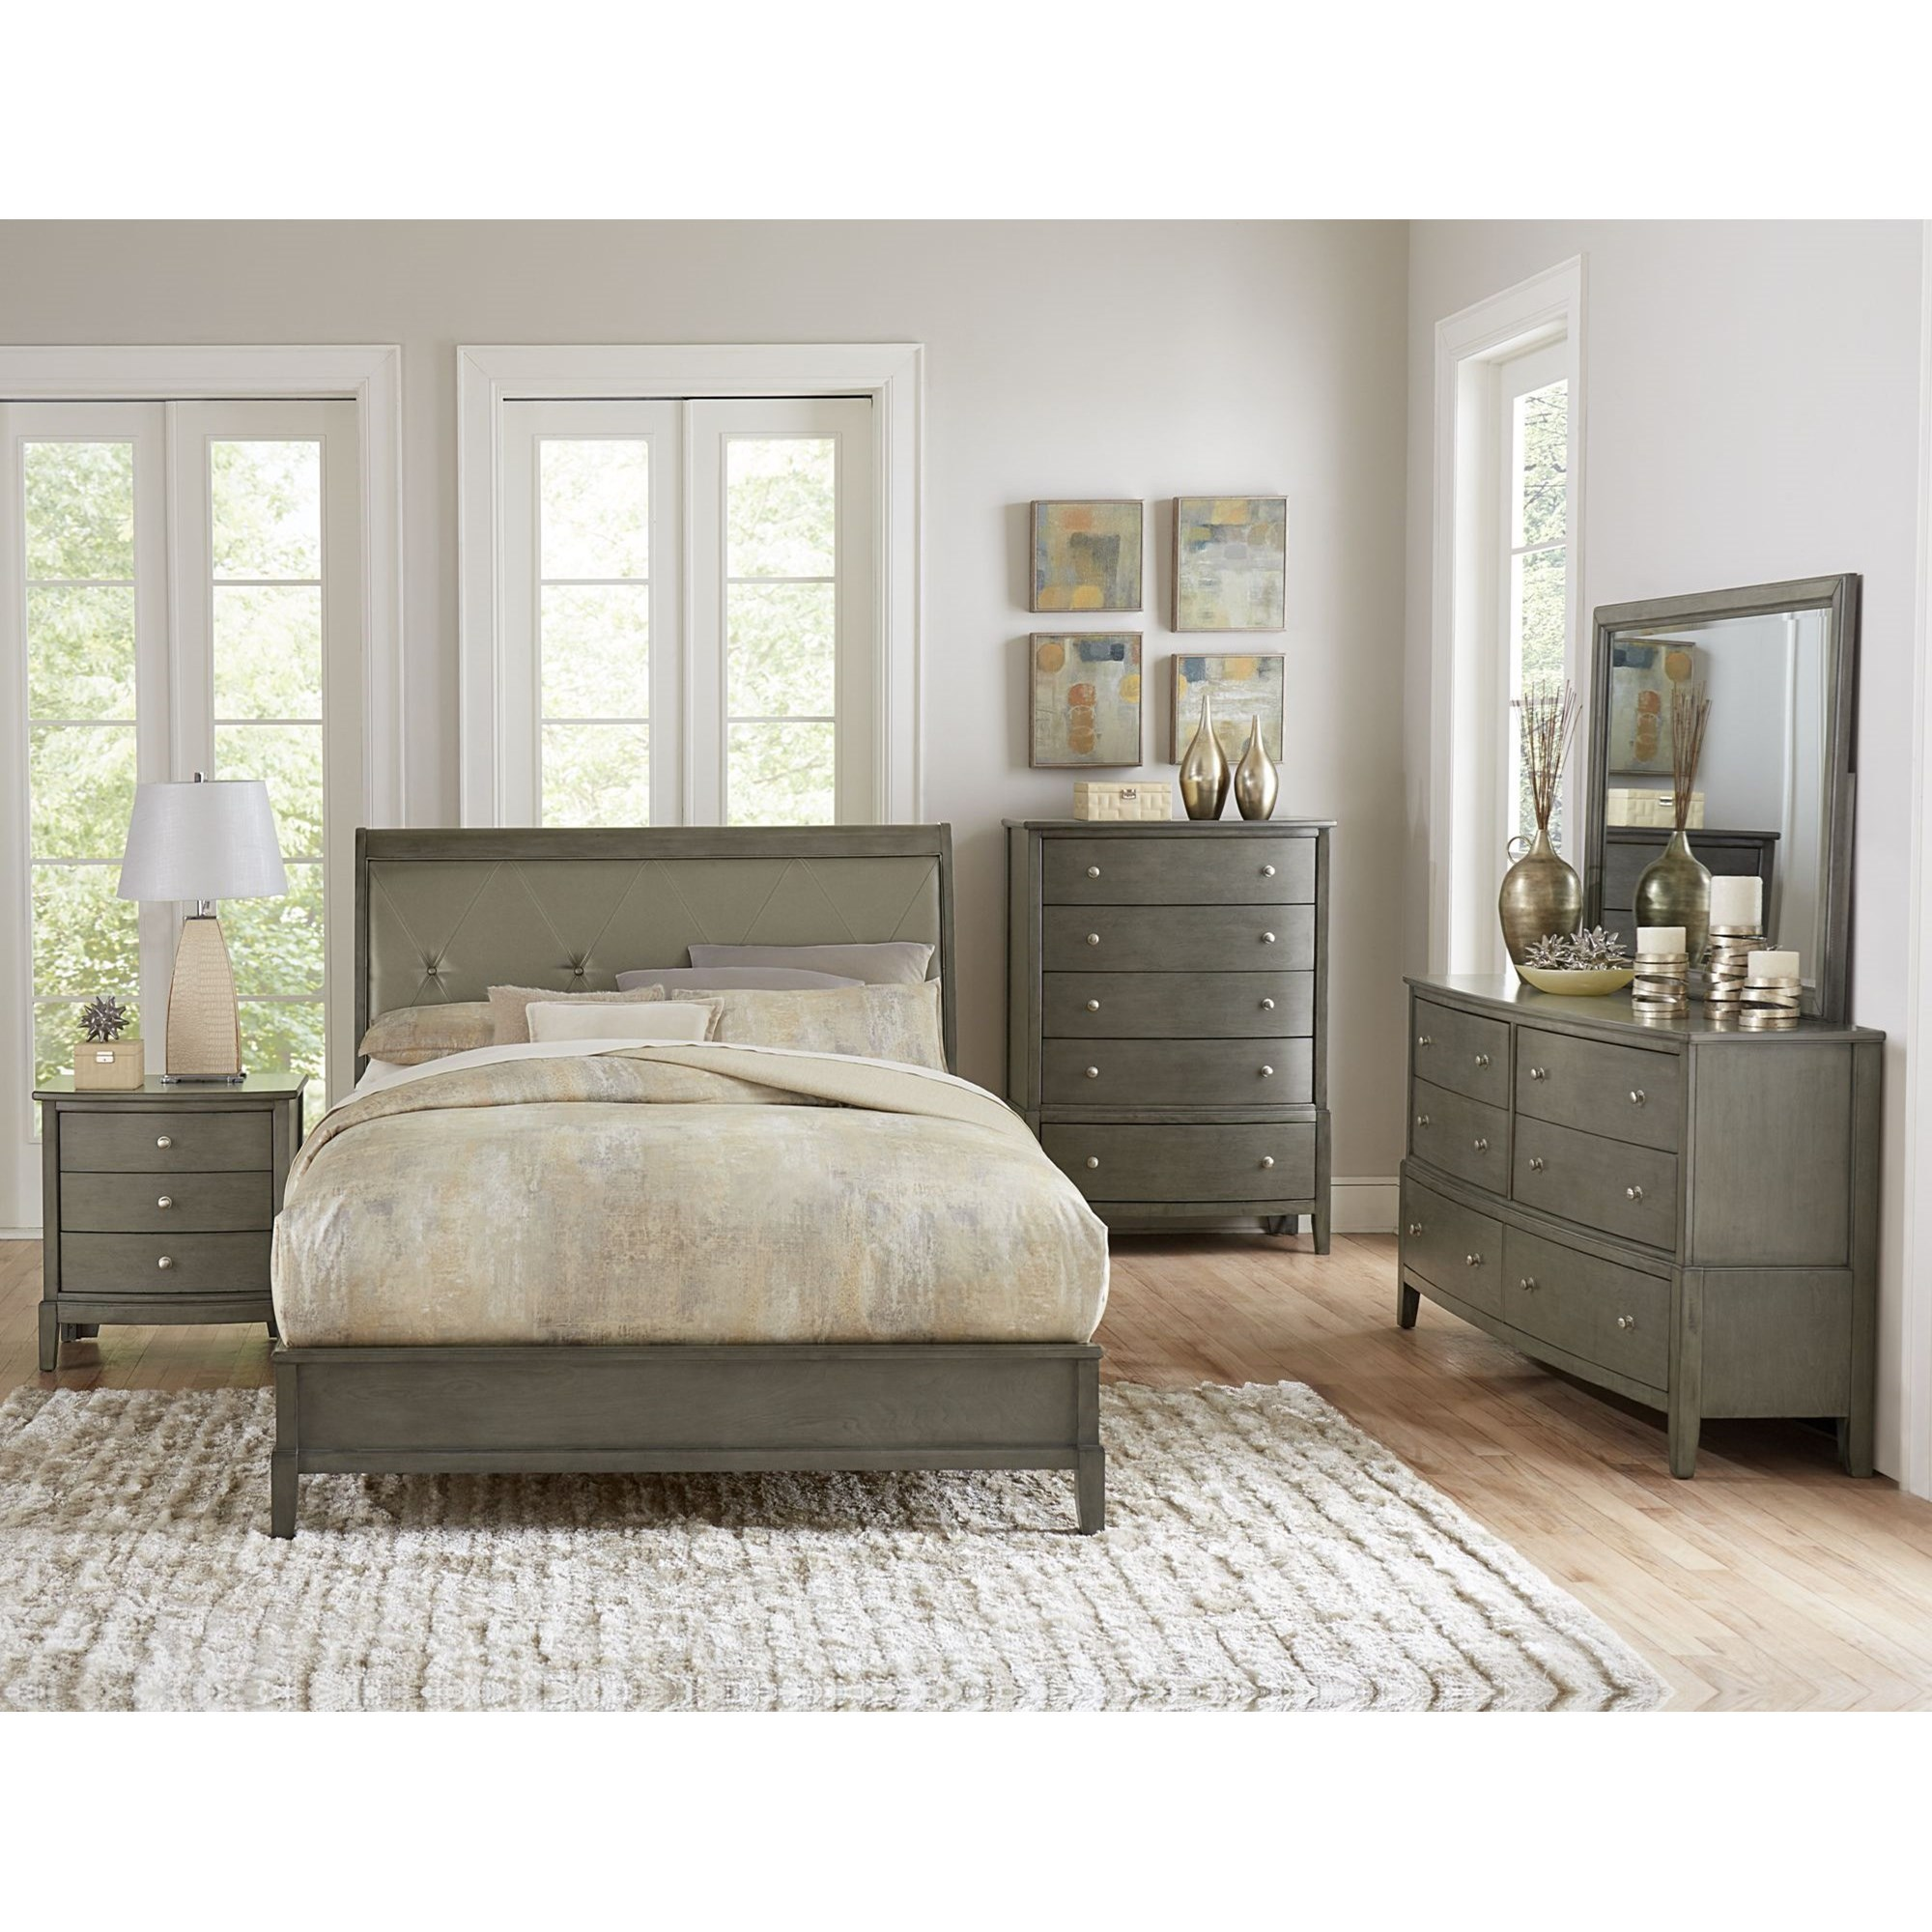 Cotterill California King Bedroom Group by Homelegance at Lindy's Furniture Company